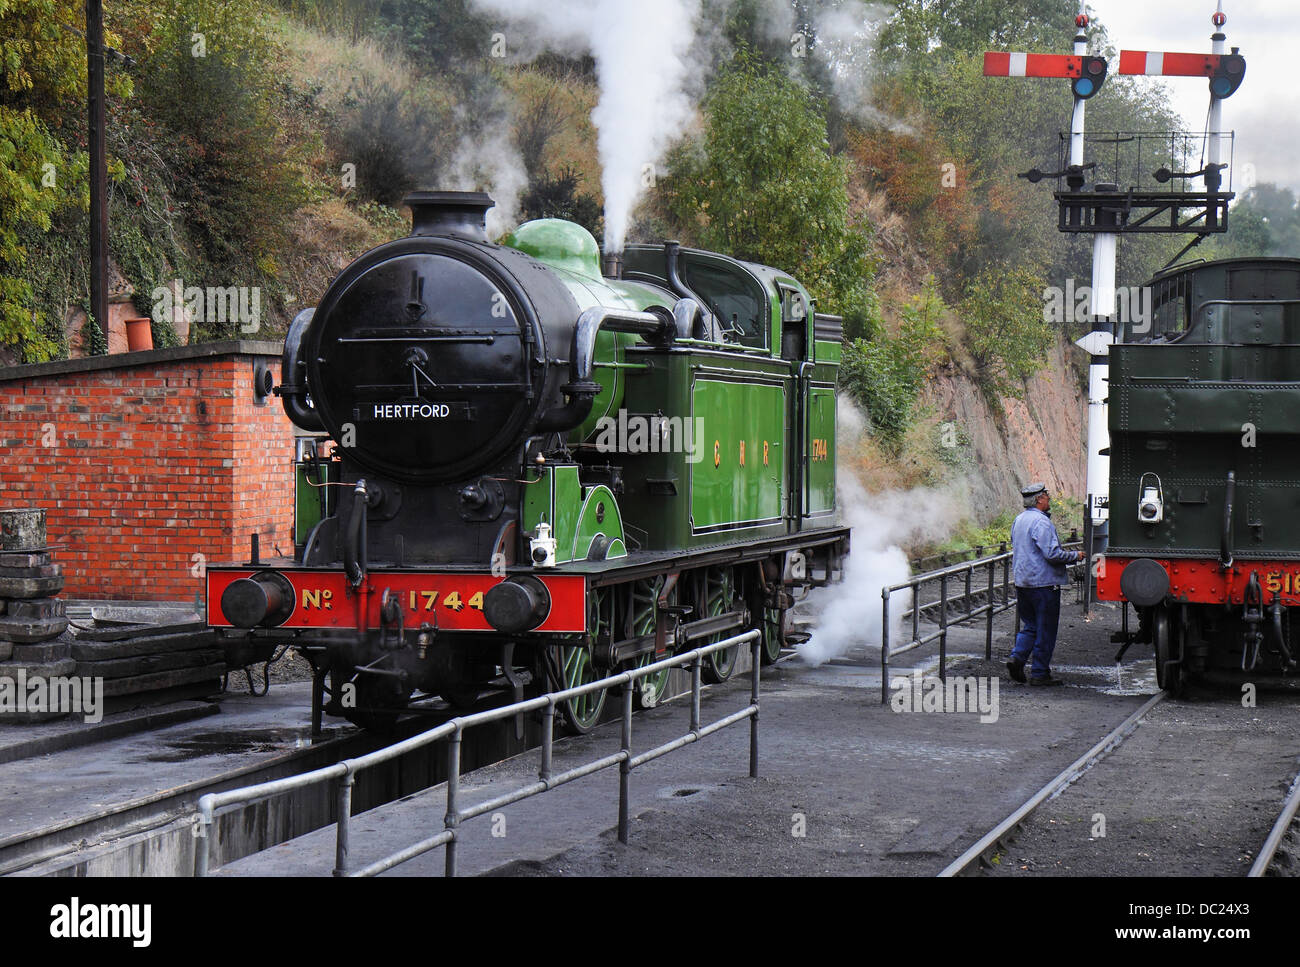 The Age of Steam, Vintage Steam Locomotives on an English Railway Stock Photo